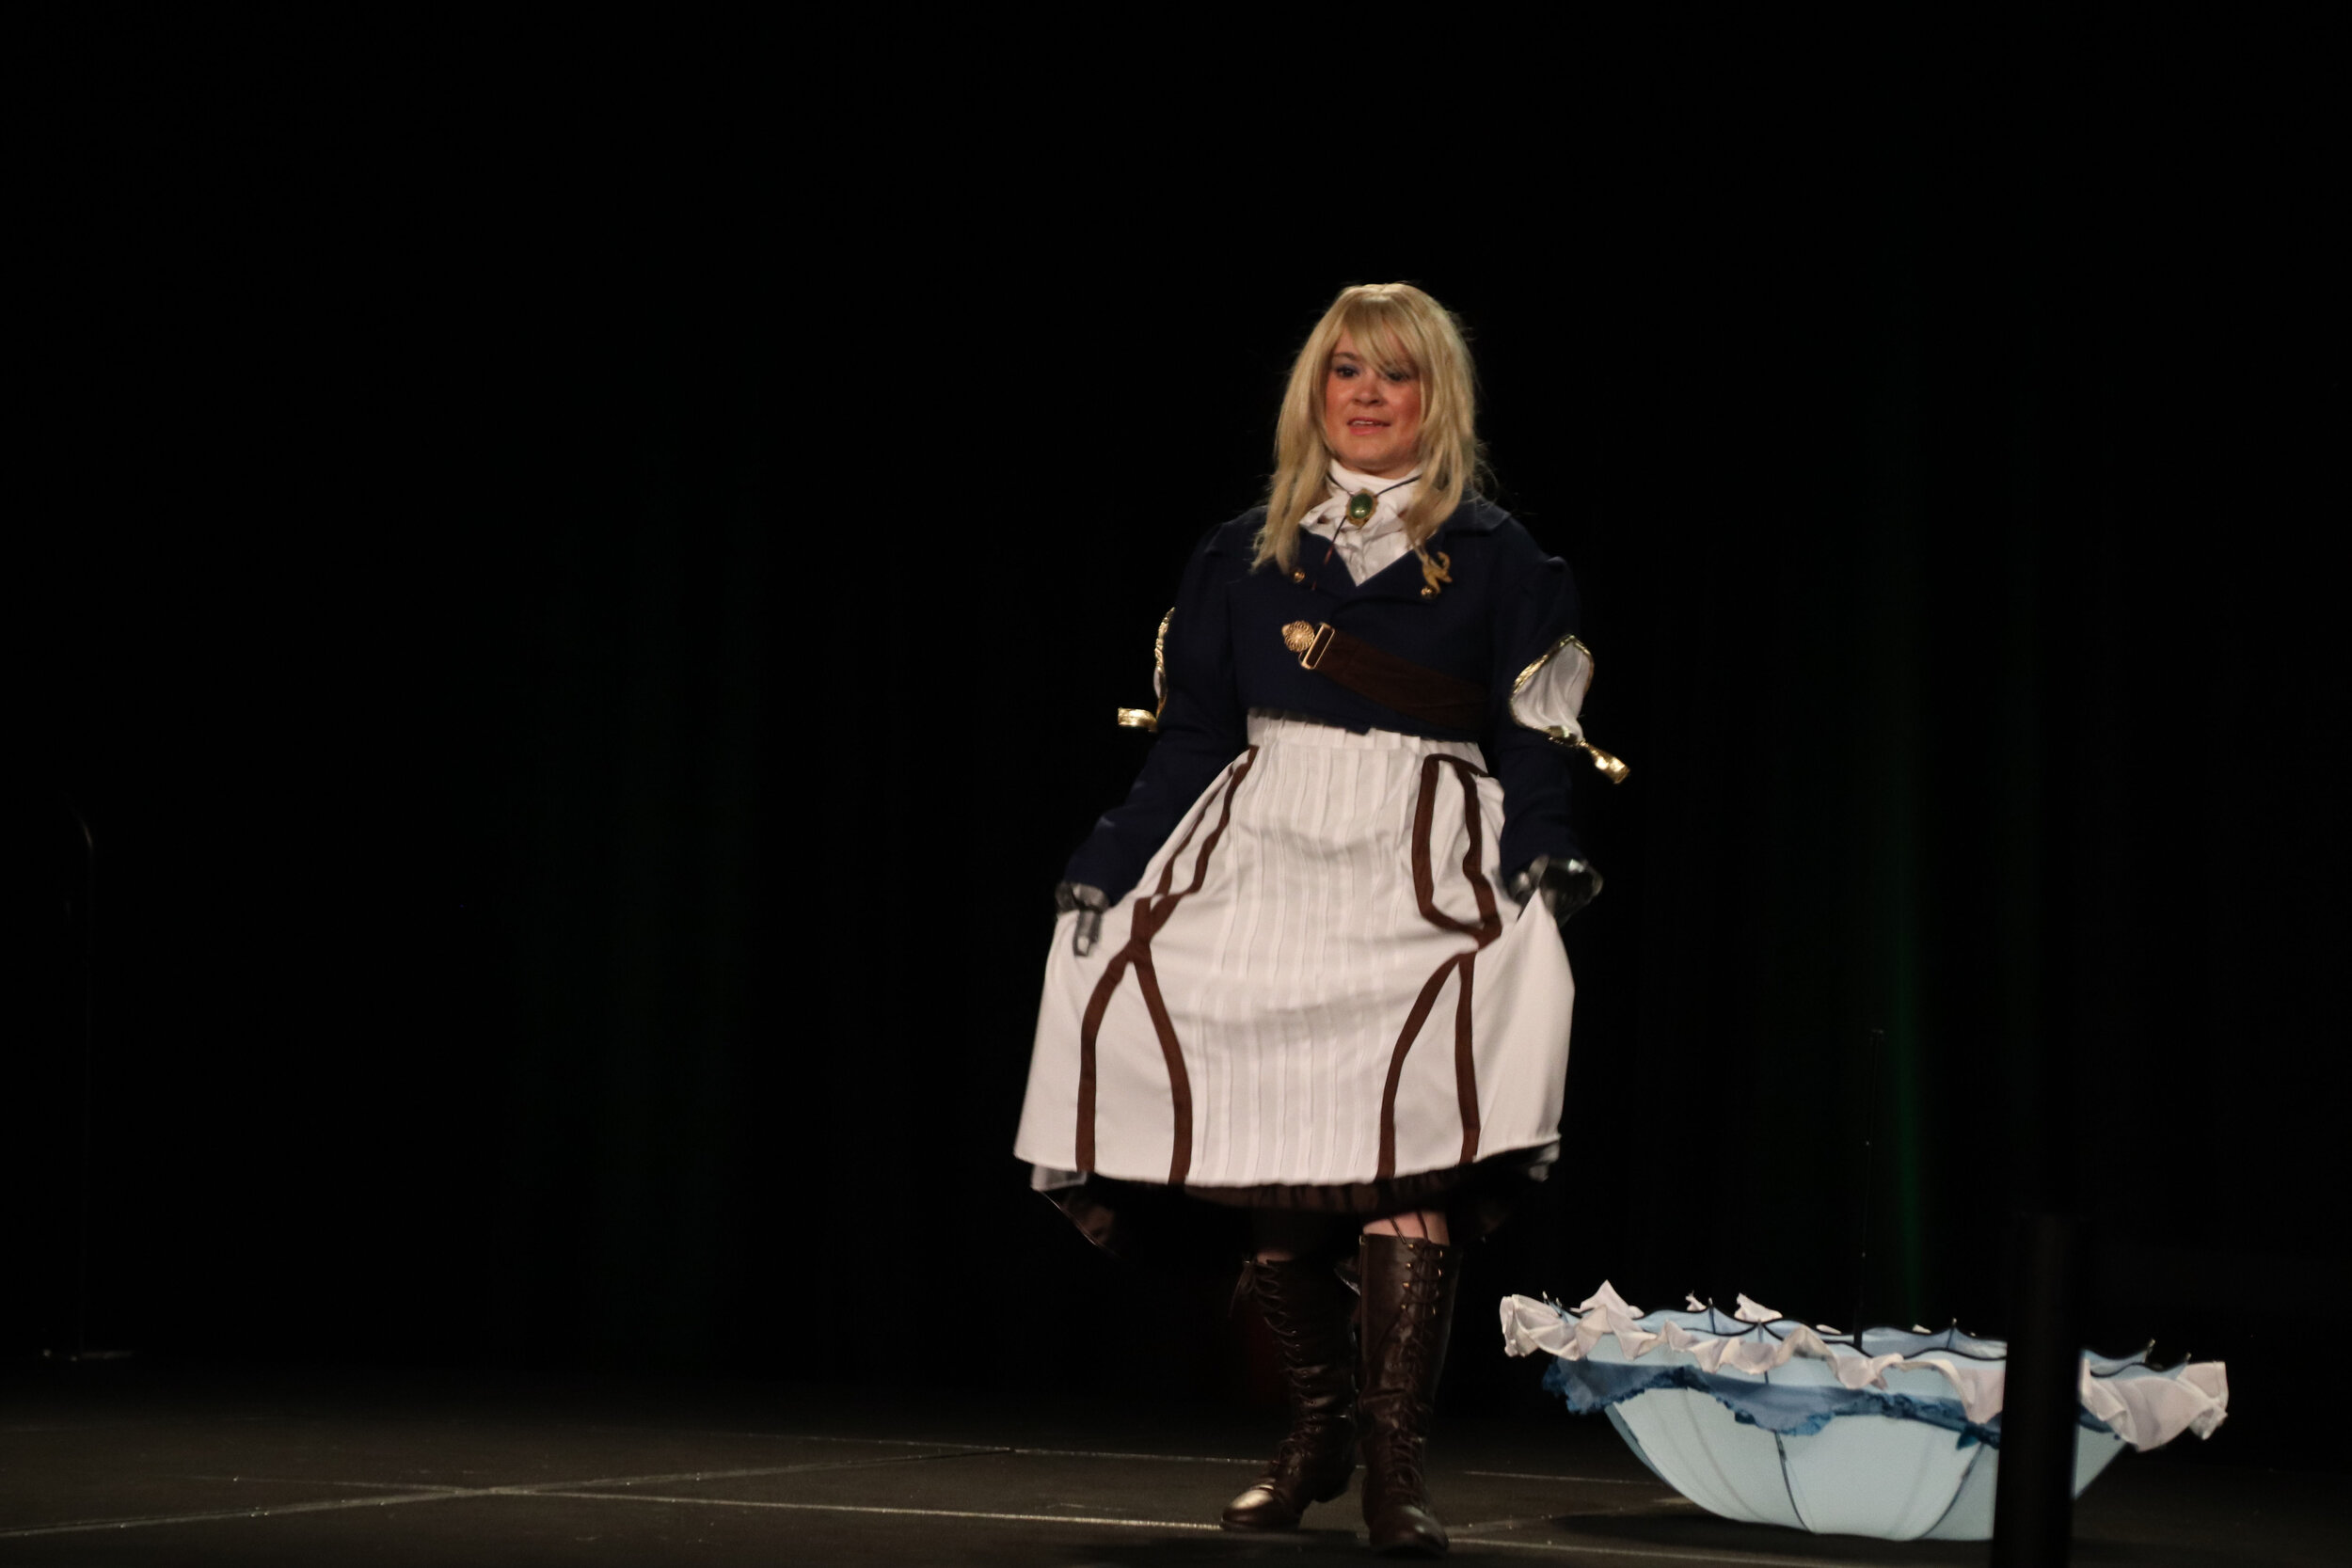 NDK Cosplay Contest 2019-193.jpg